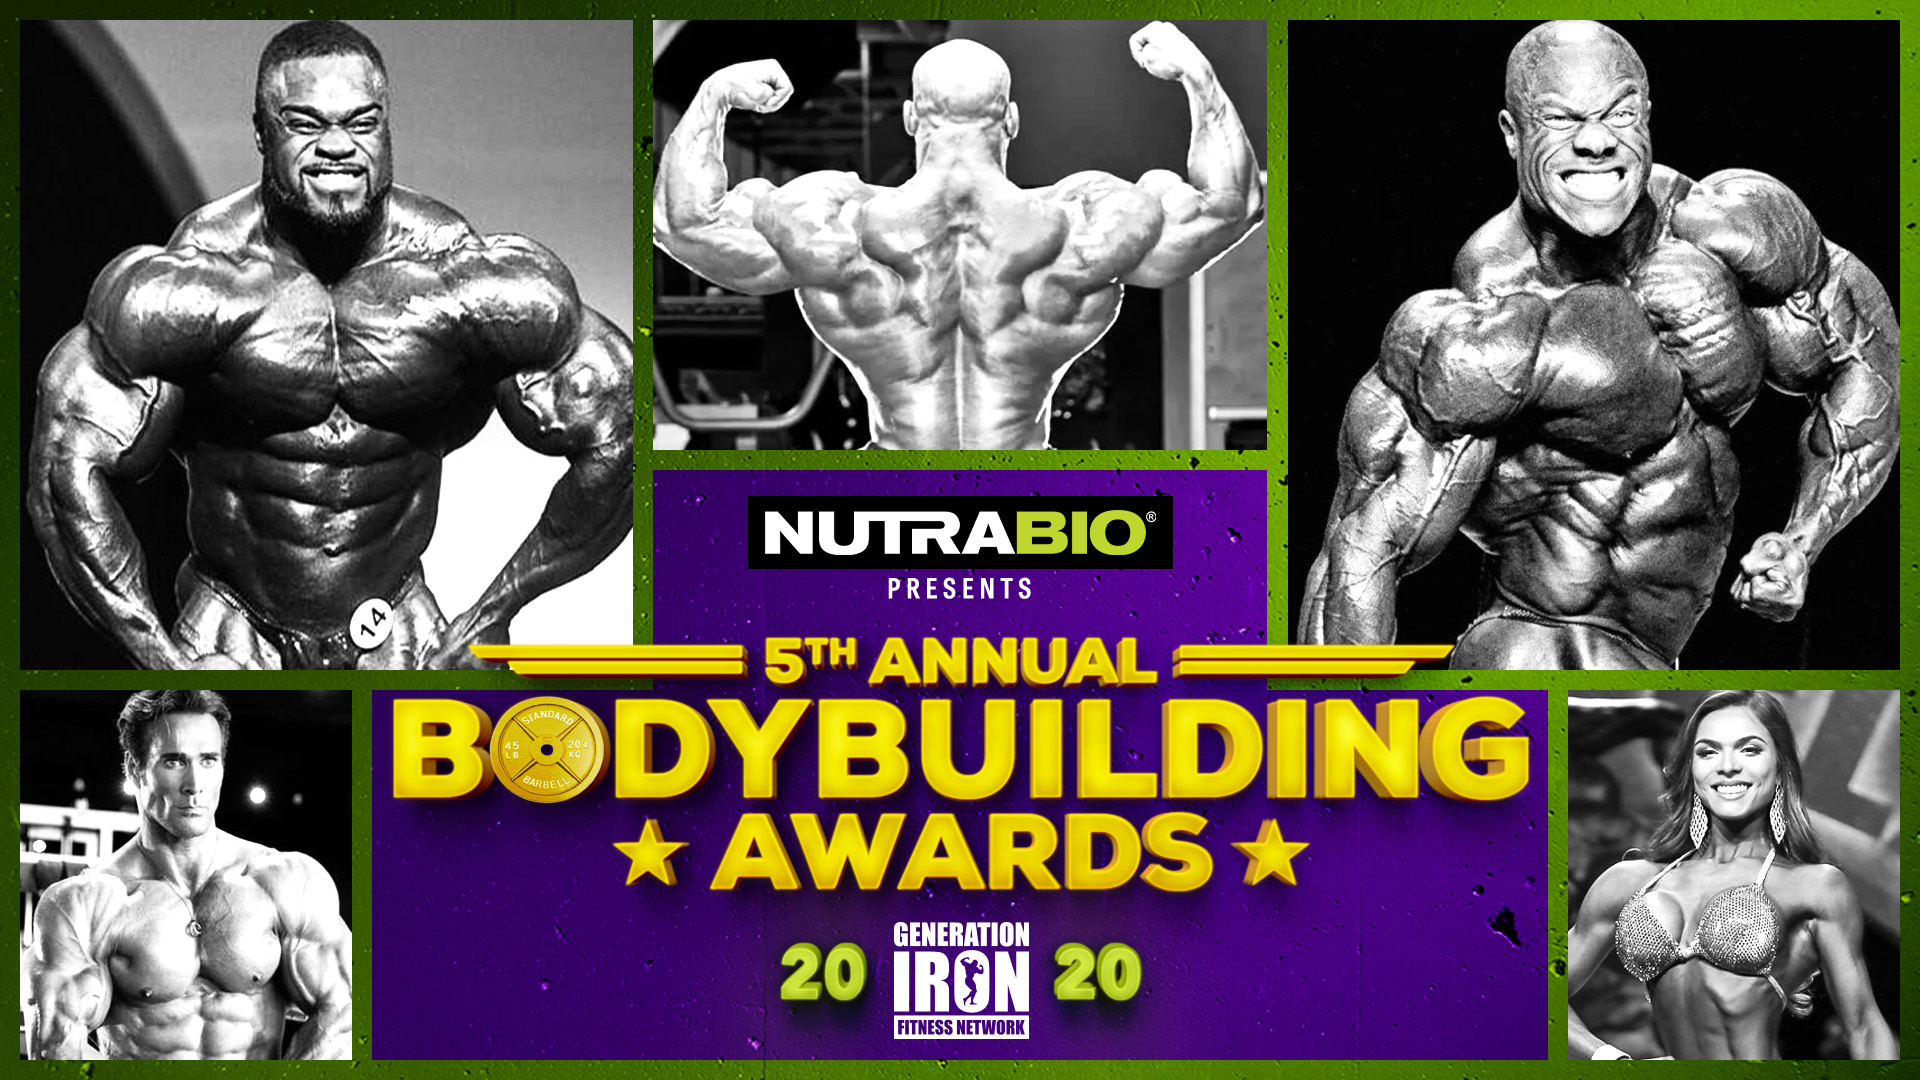 Generation Iron Bodybuilding Awards 2020